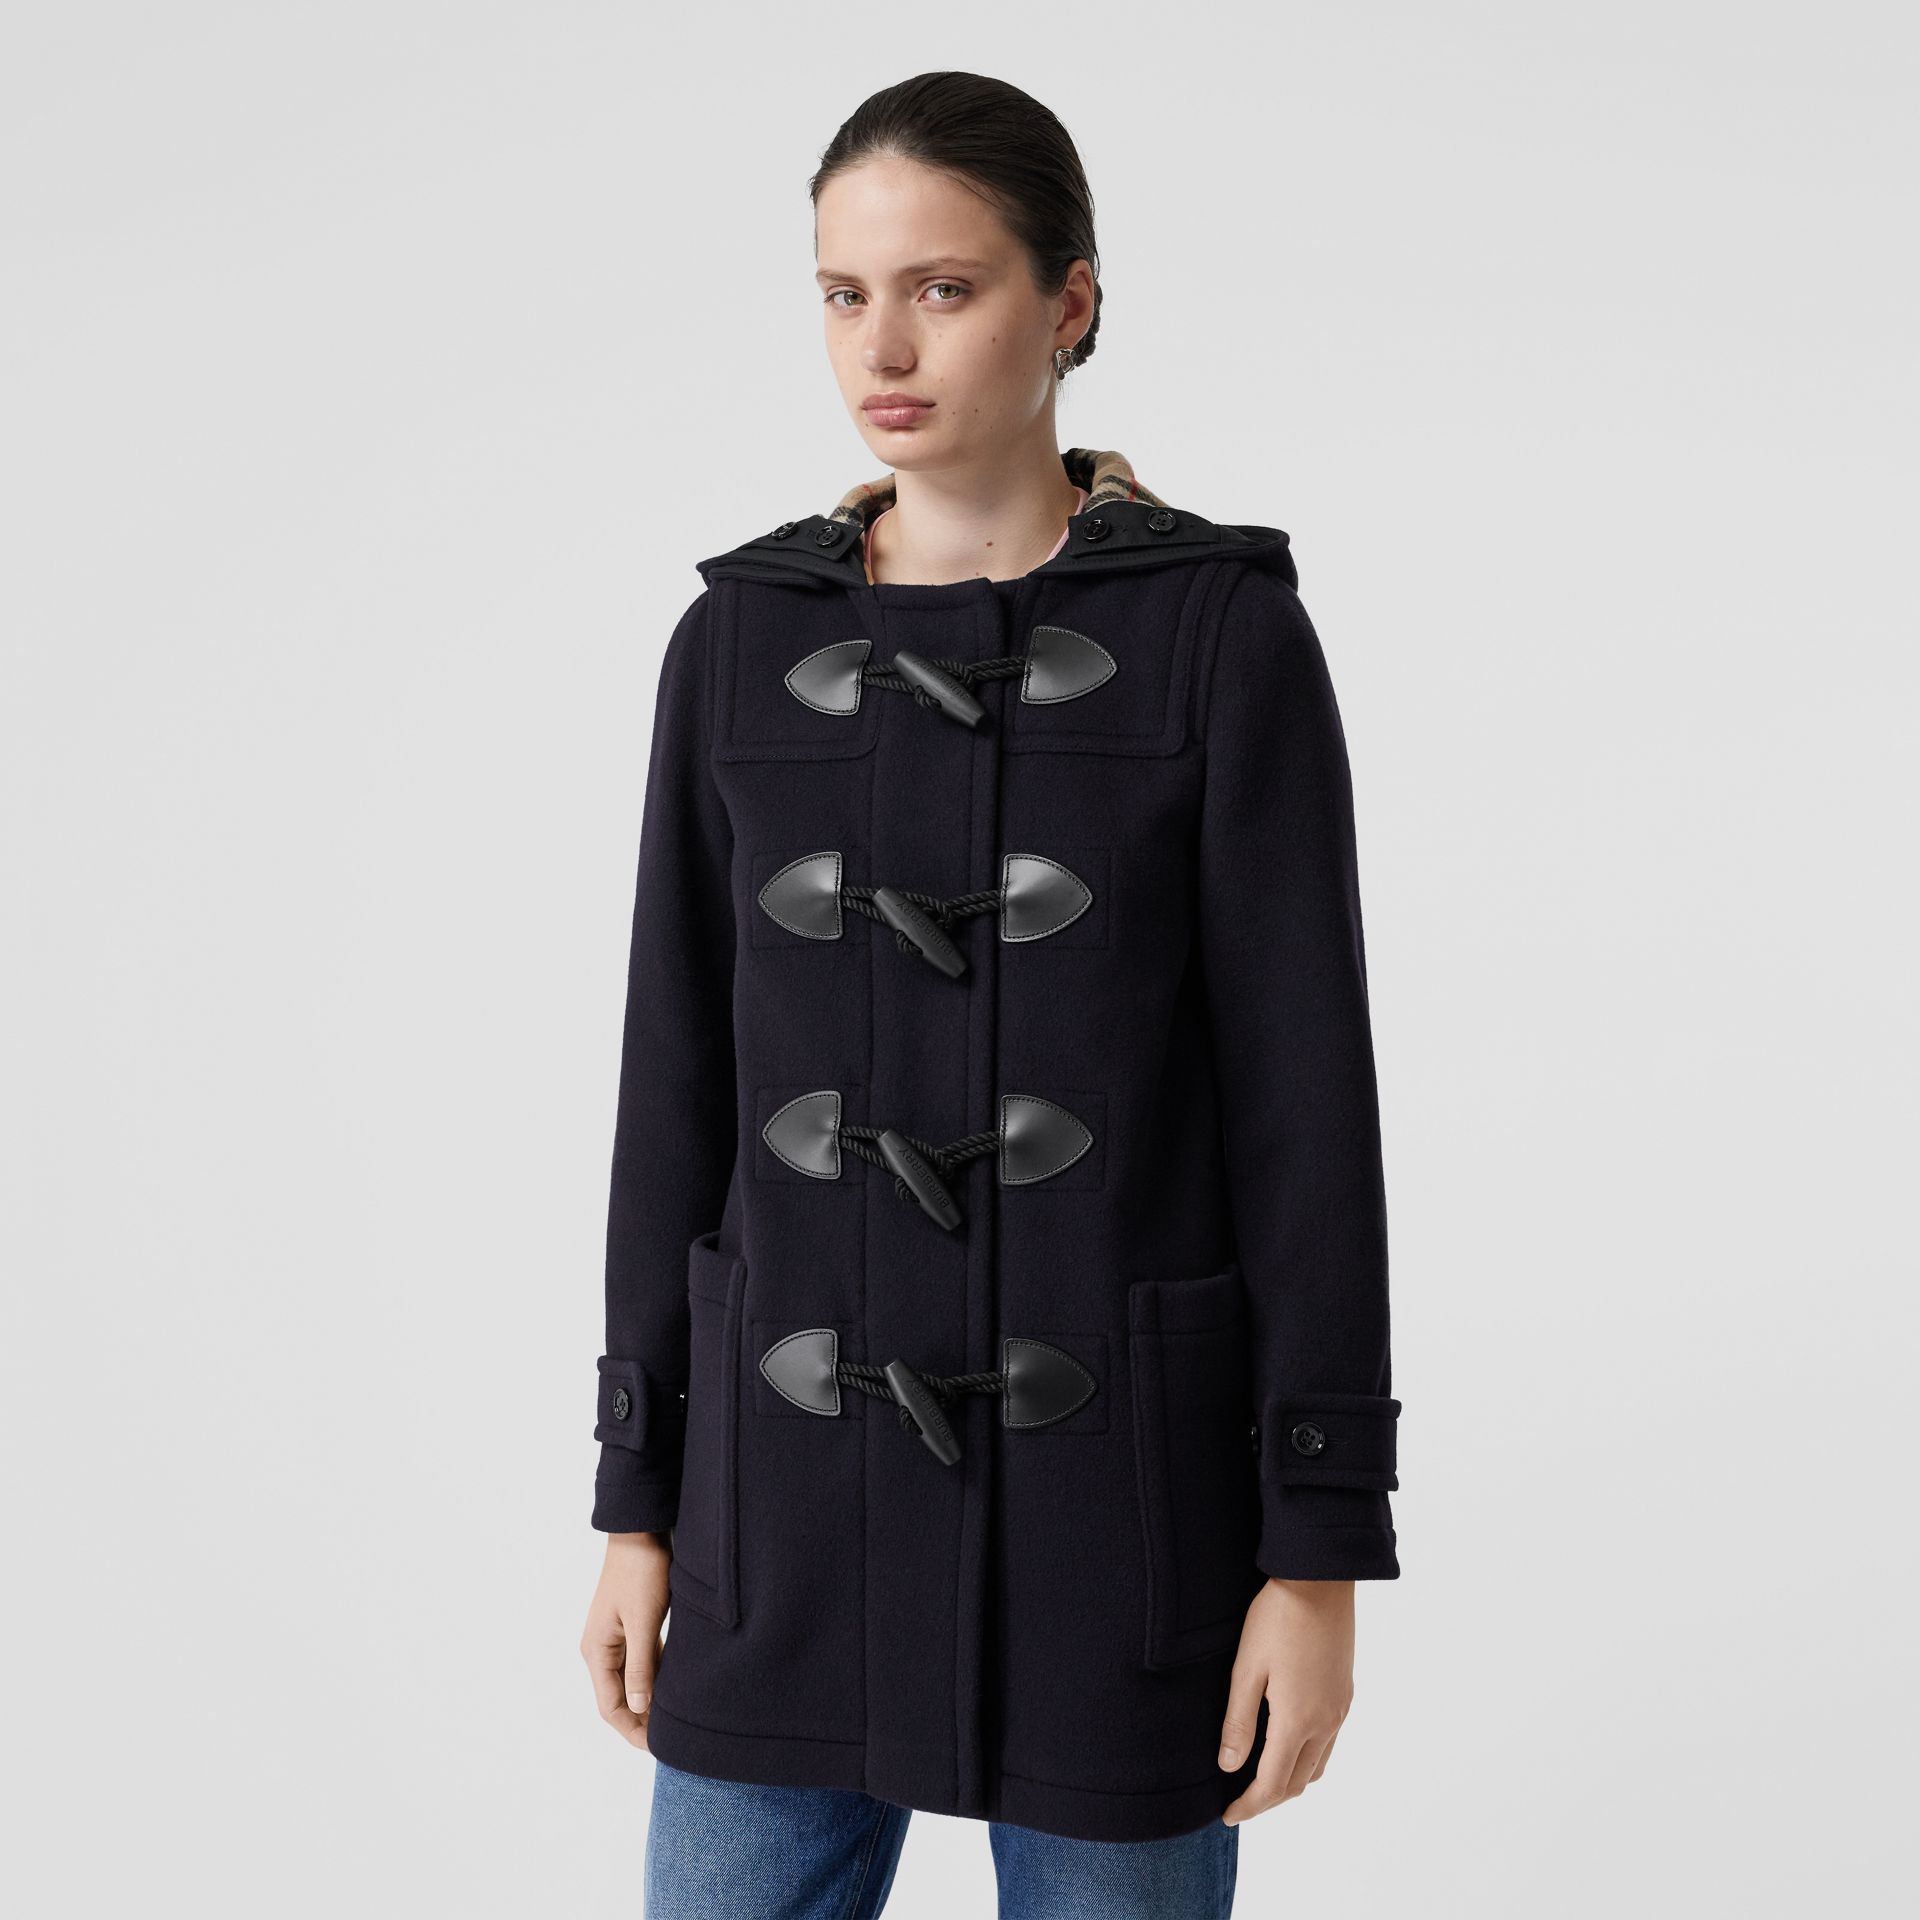 Wool Blend Duffle Coat in Navy - Women | Burberry - gallery image 6